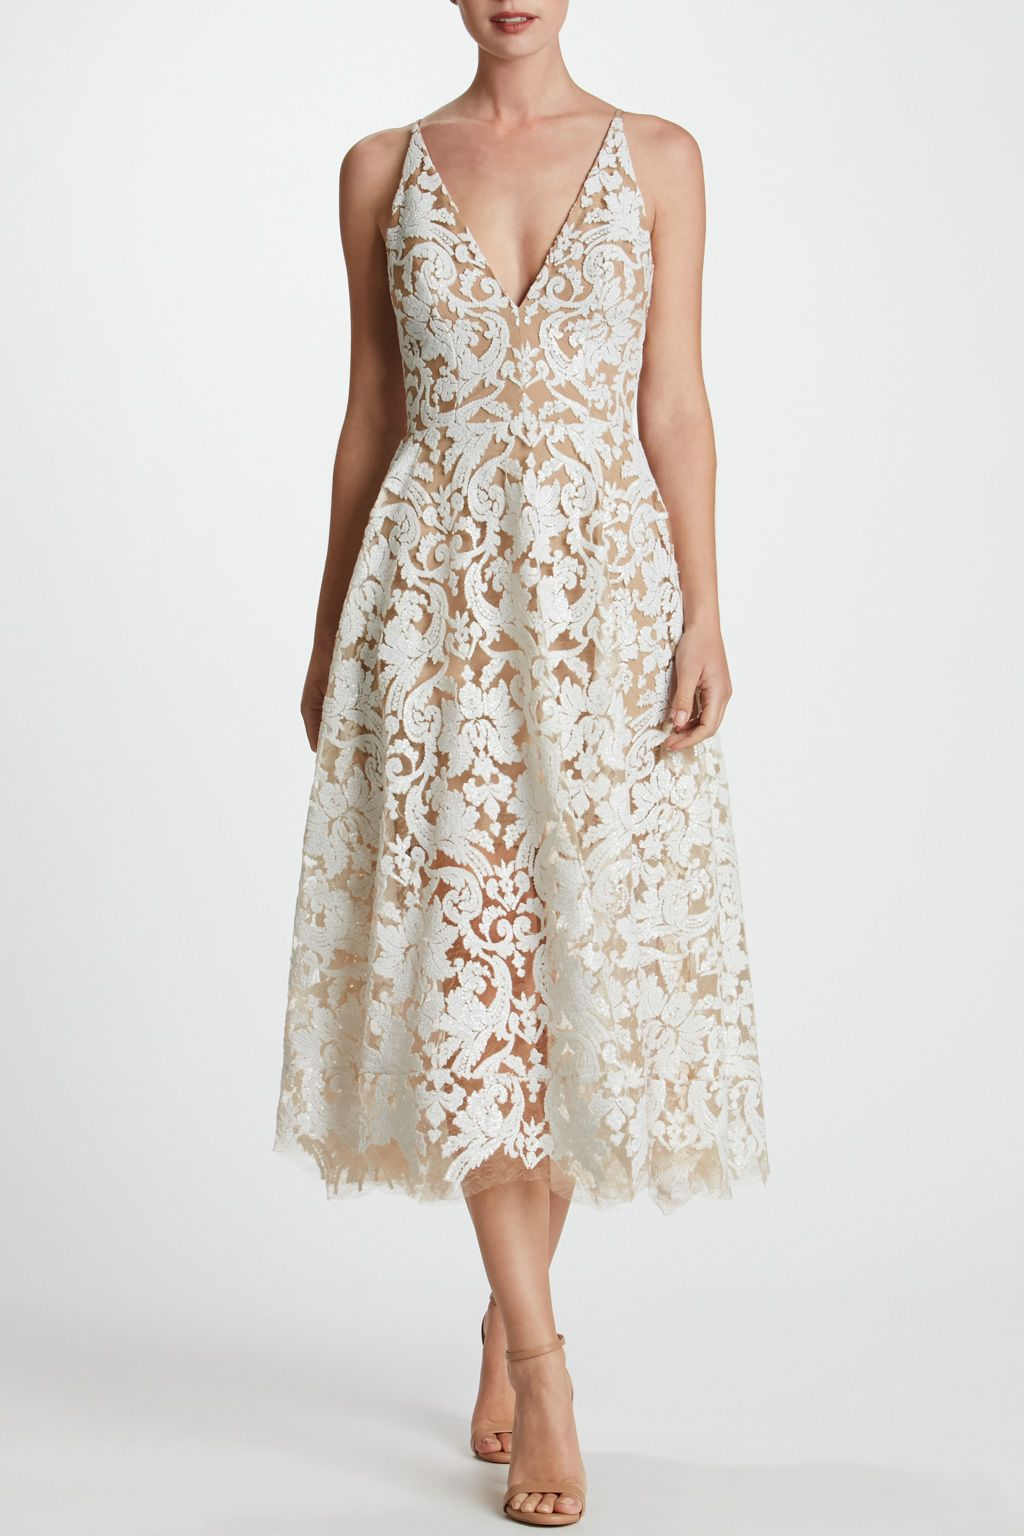 Thurley wedding dress  Blair Sequin Lace Fit and Flare Midi Dress  Wedding Rehearsal